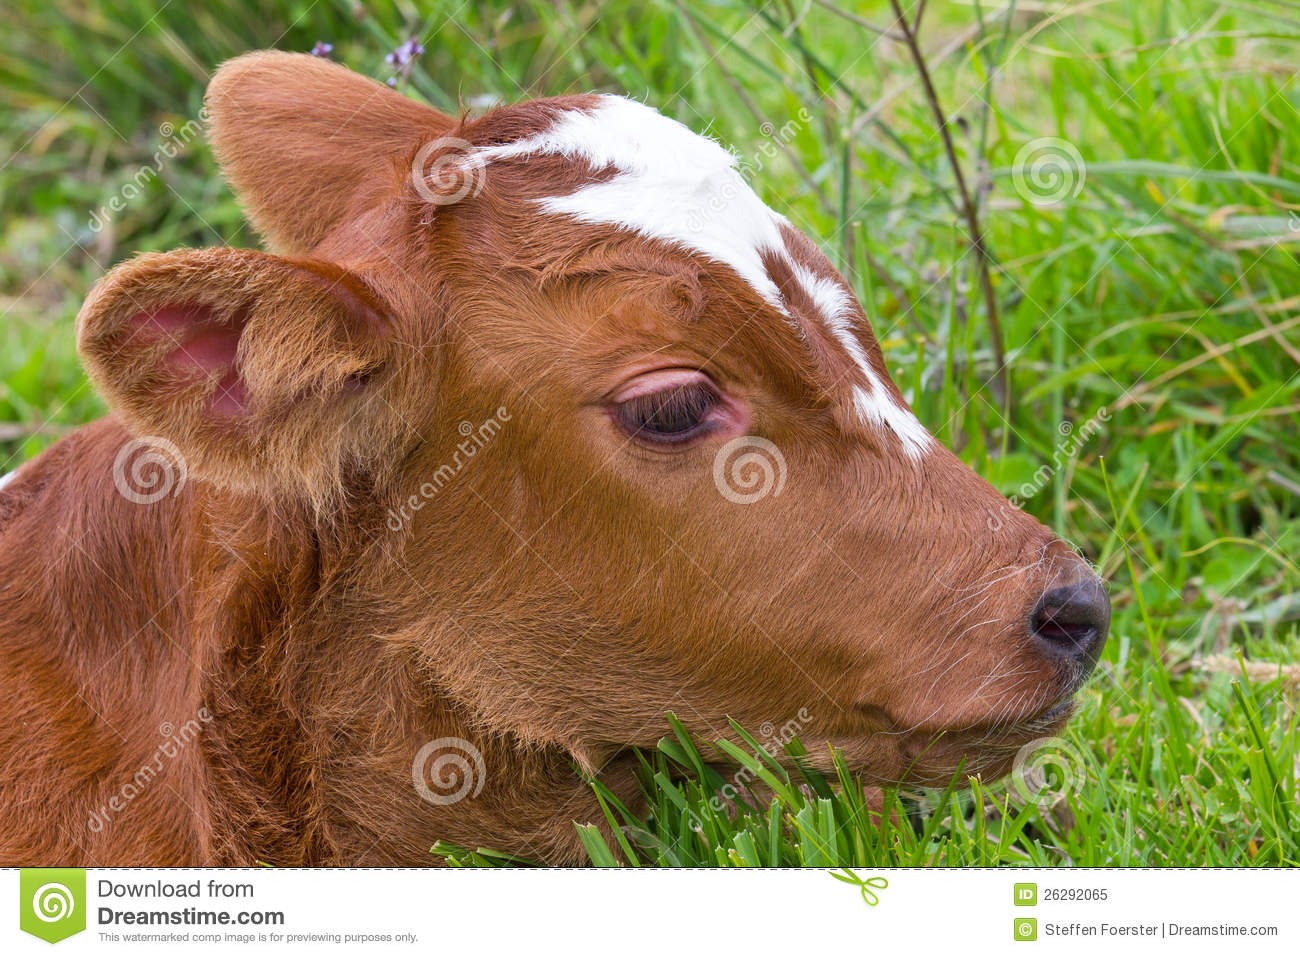 Brown baby cows - photo#23